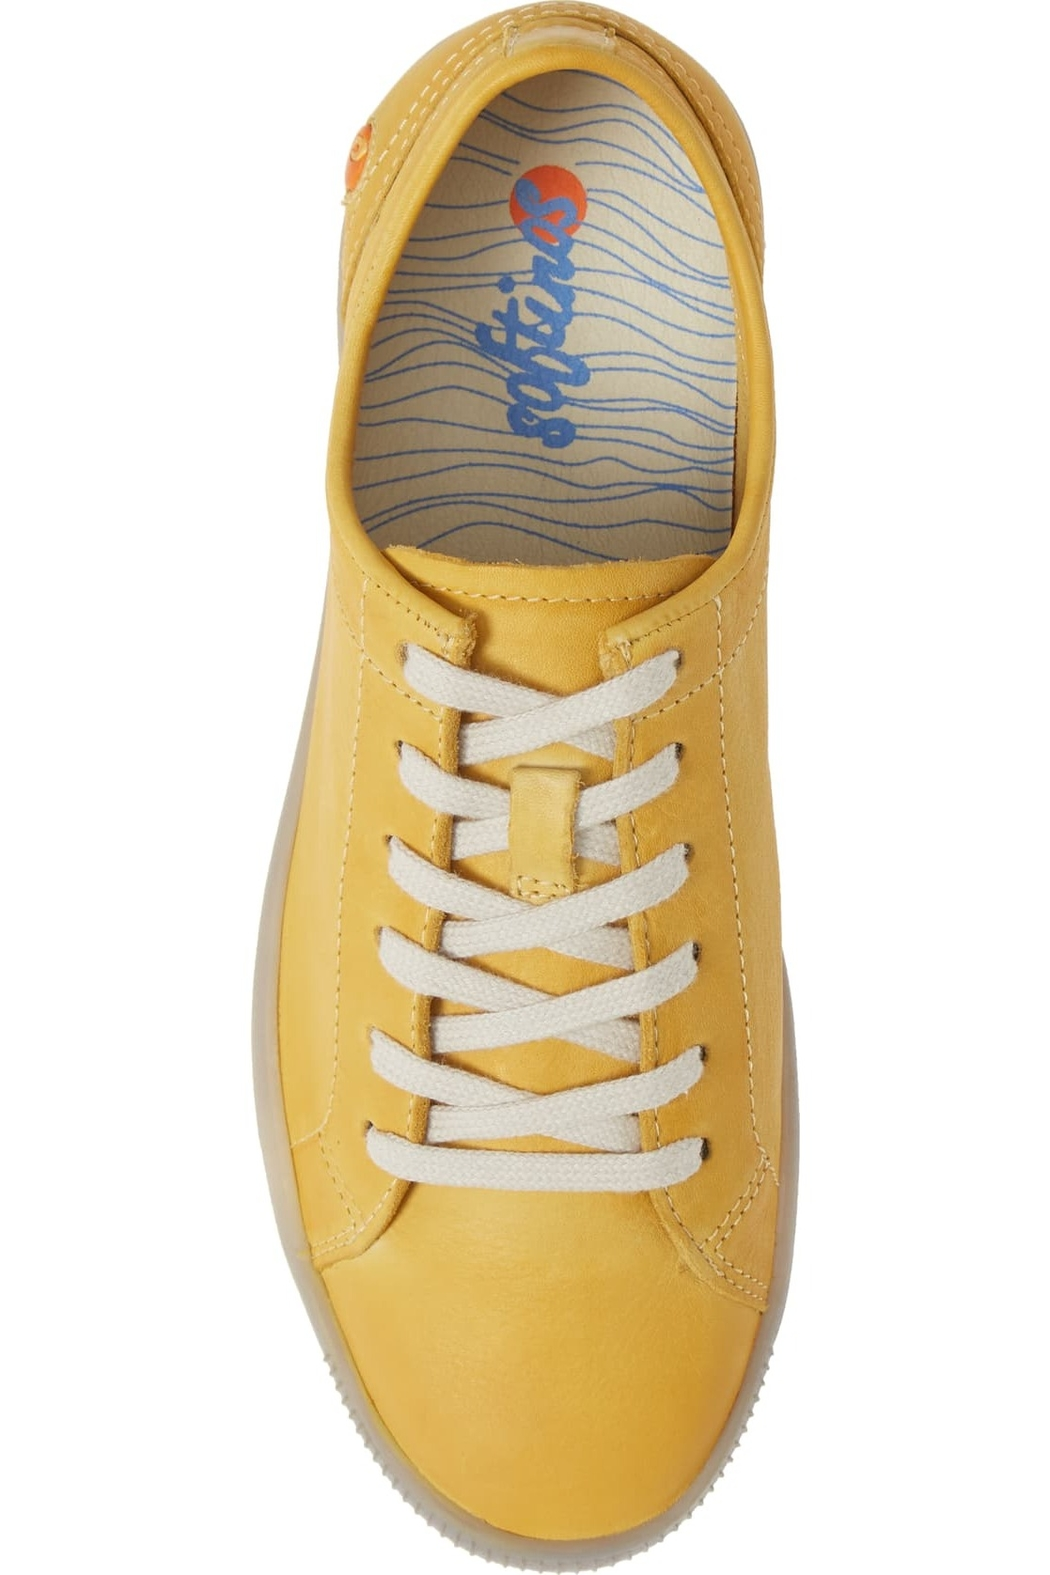 Bos & Co. Sady Leather Sneaker - Front Cropped Image